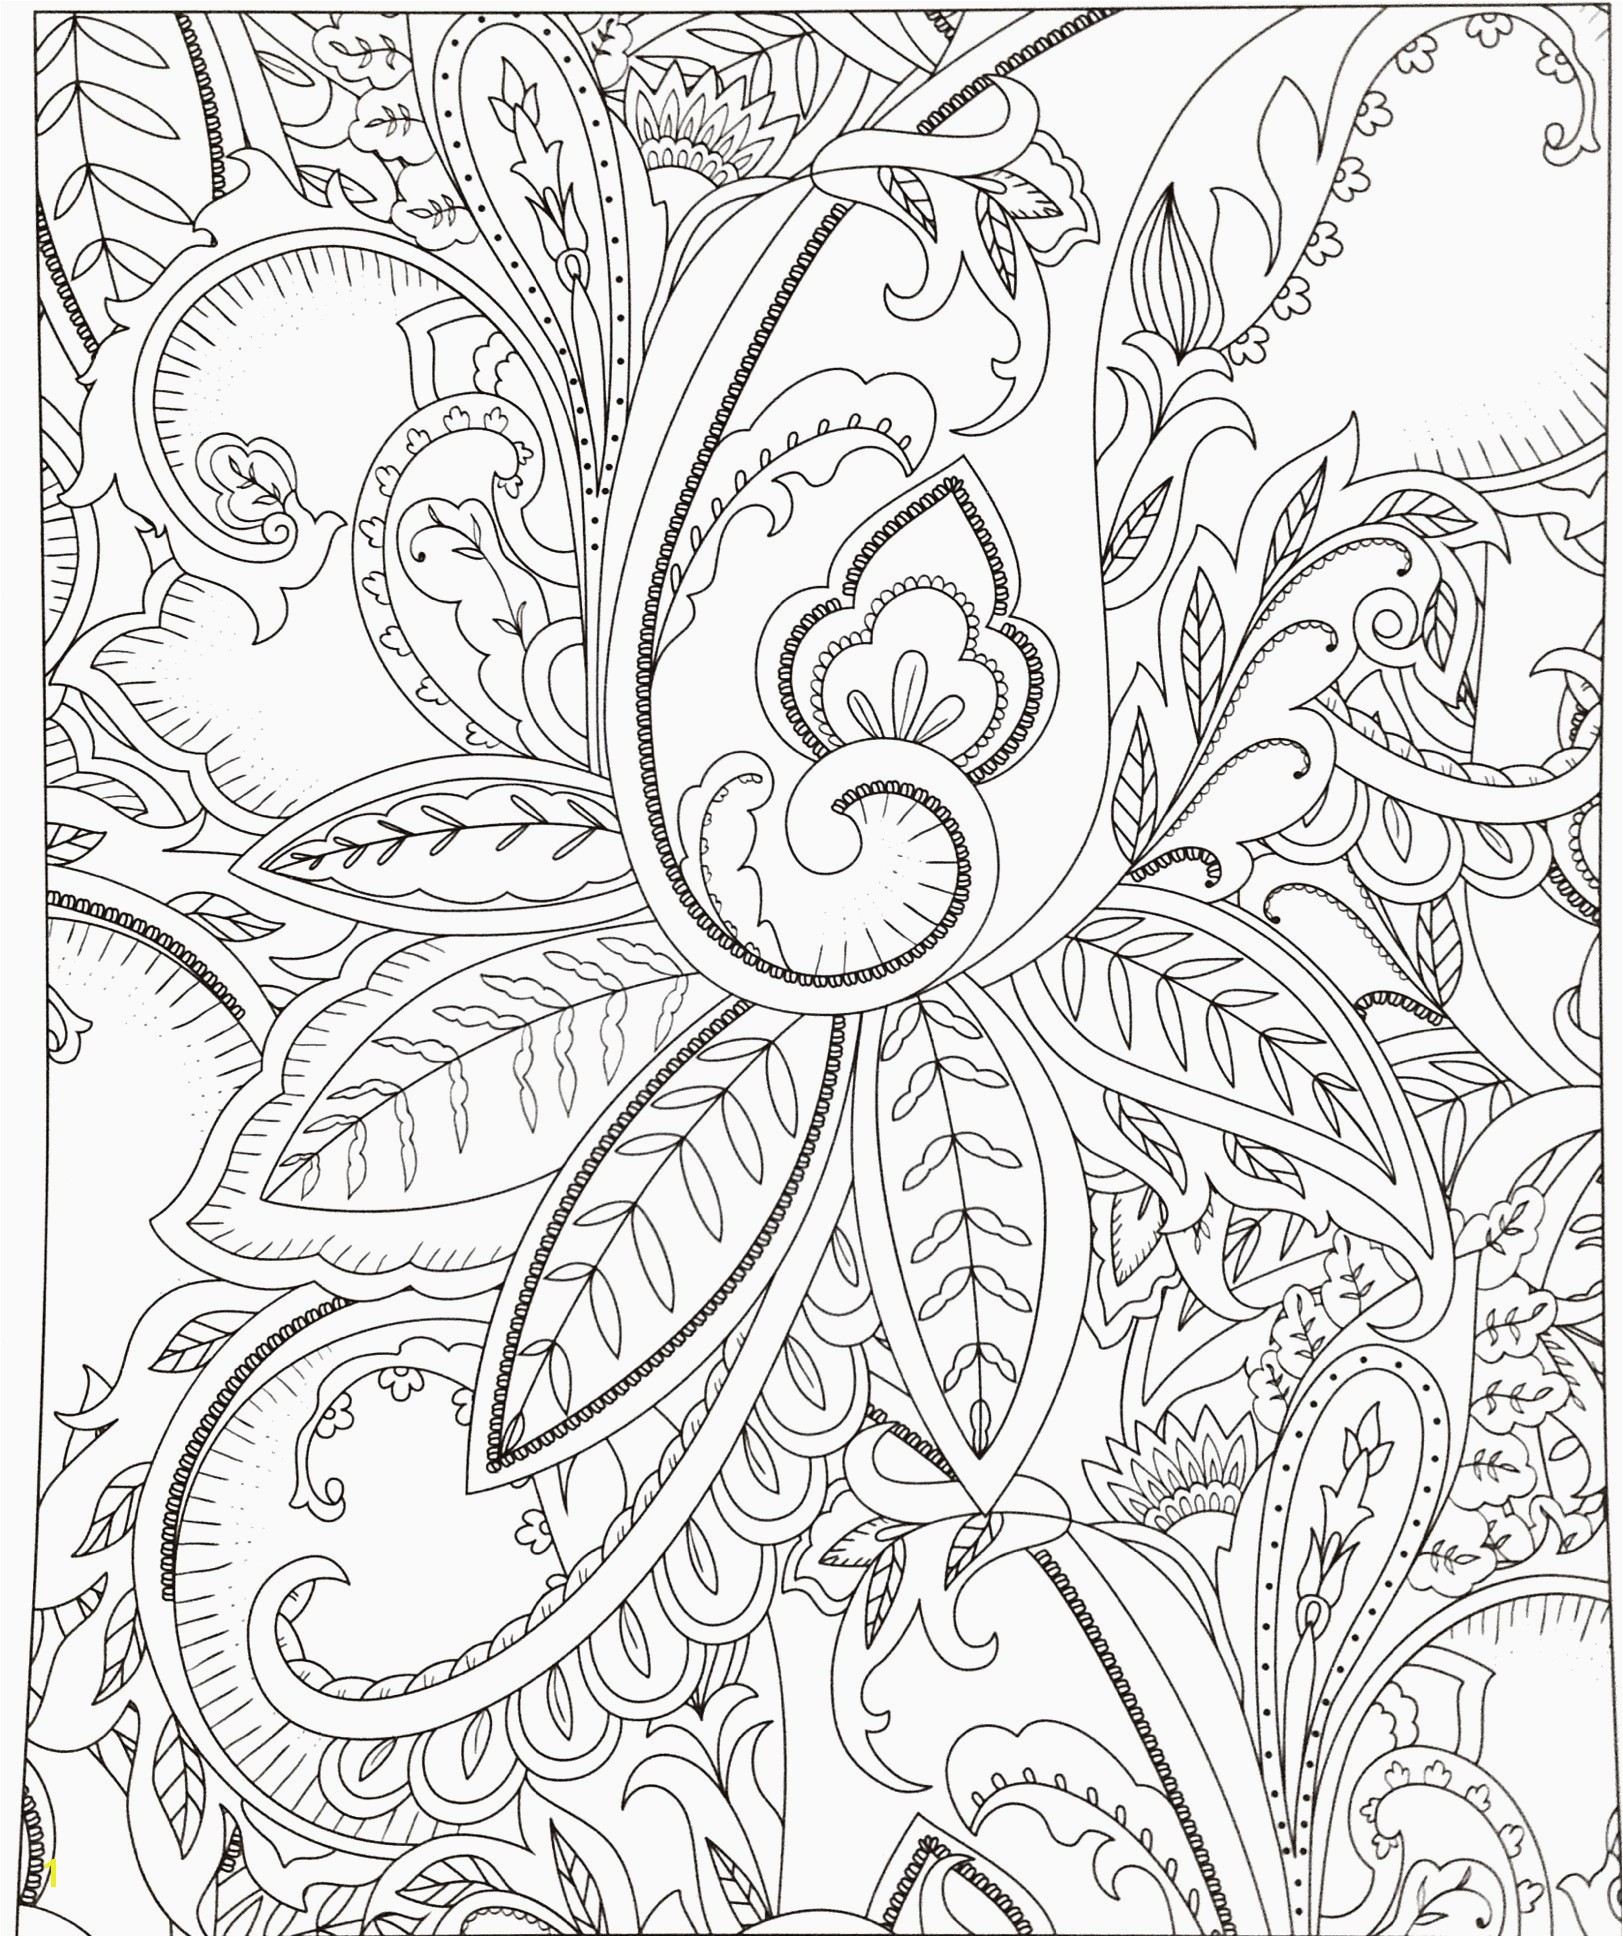 Coloring Page Of A Dress Unique Free Disney Coloring Pages for Kids